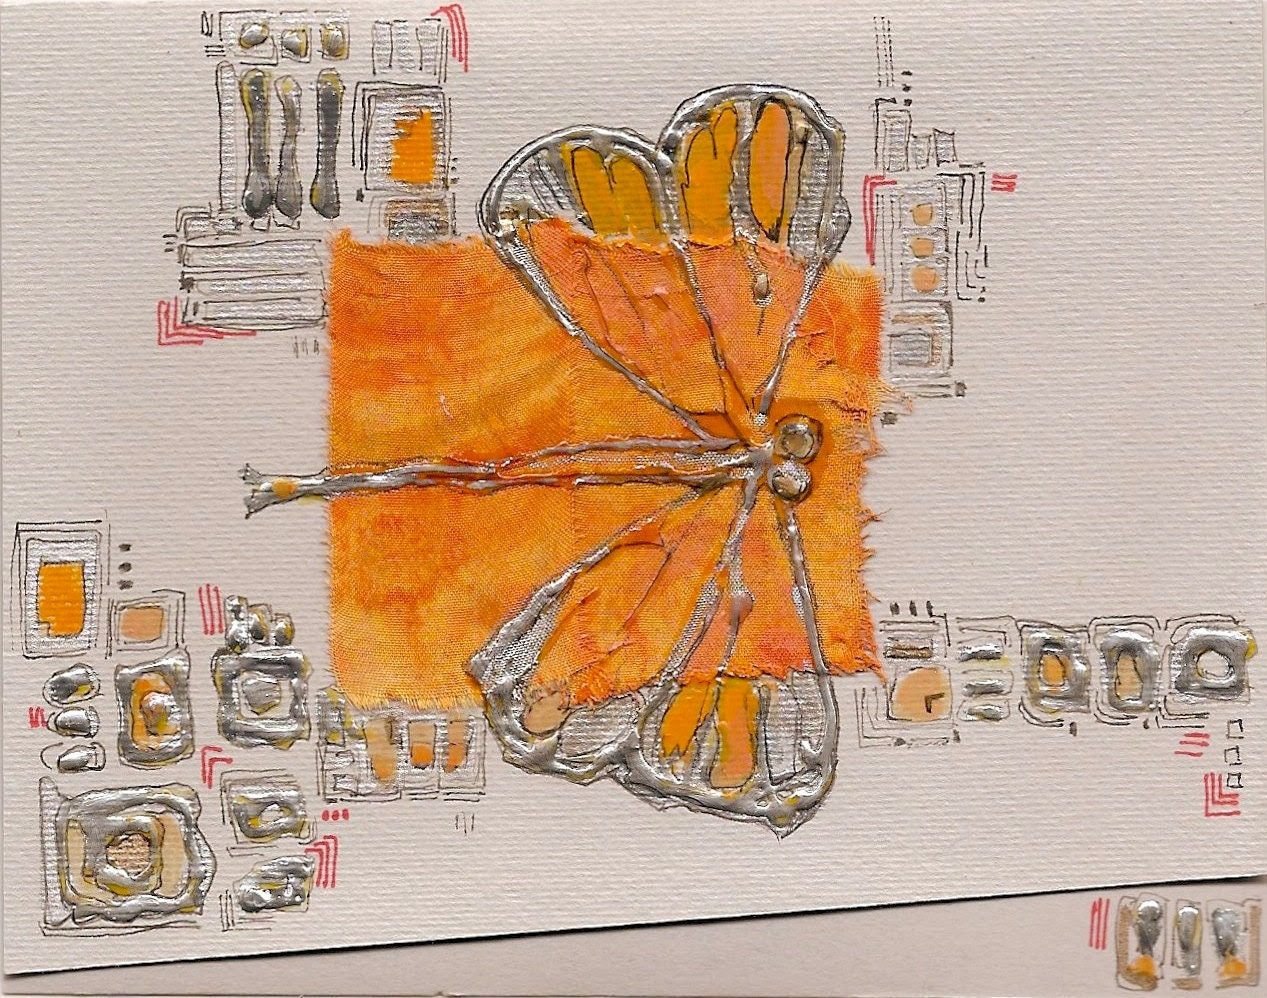 Orange dragonfly, flying over the city II - blank greeting card for any occasion